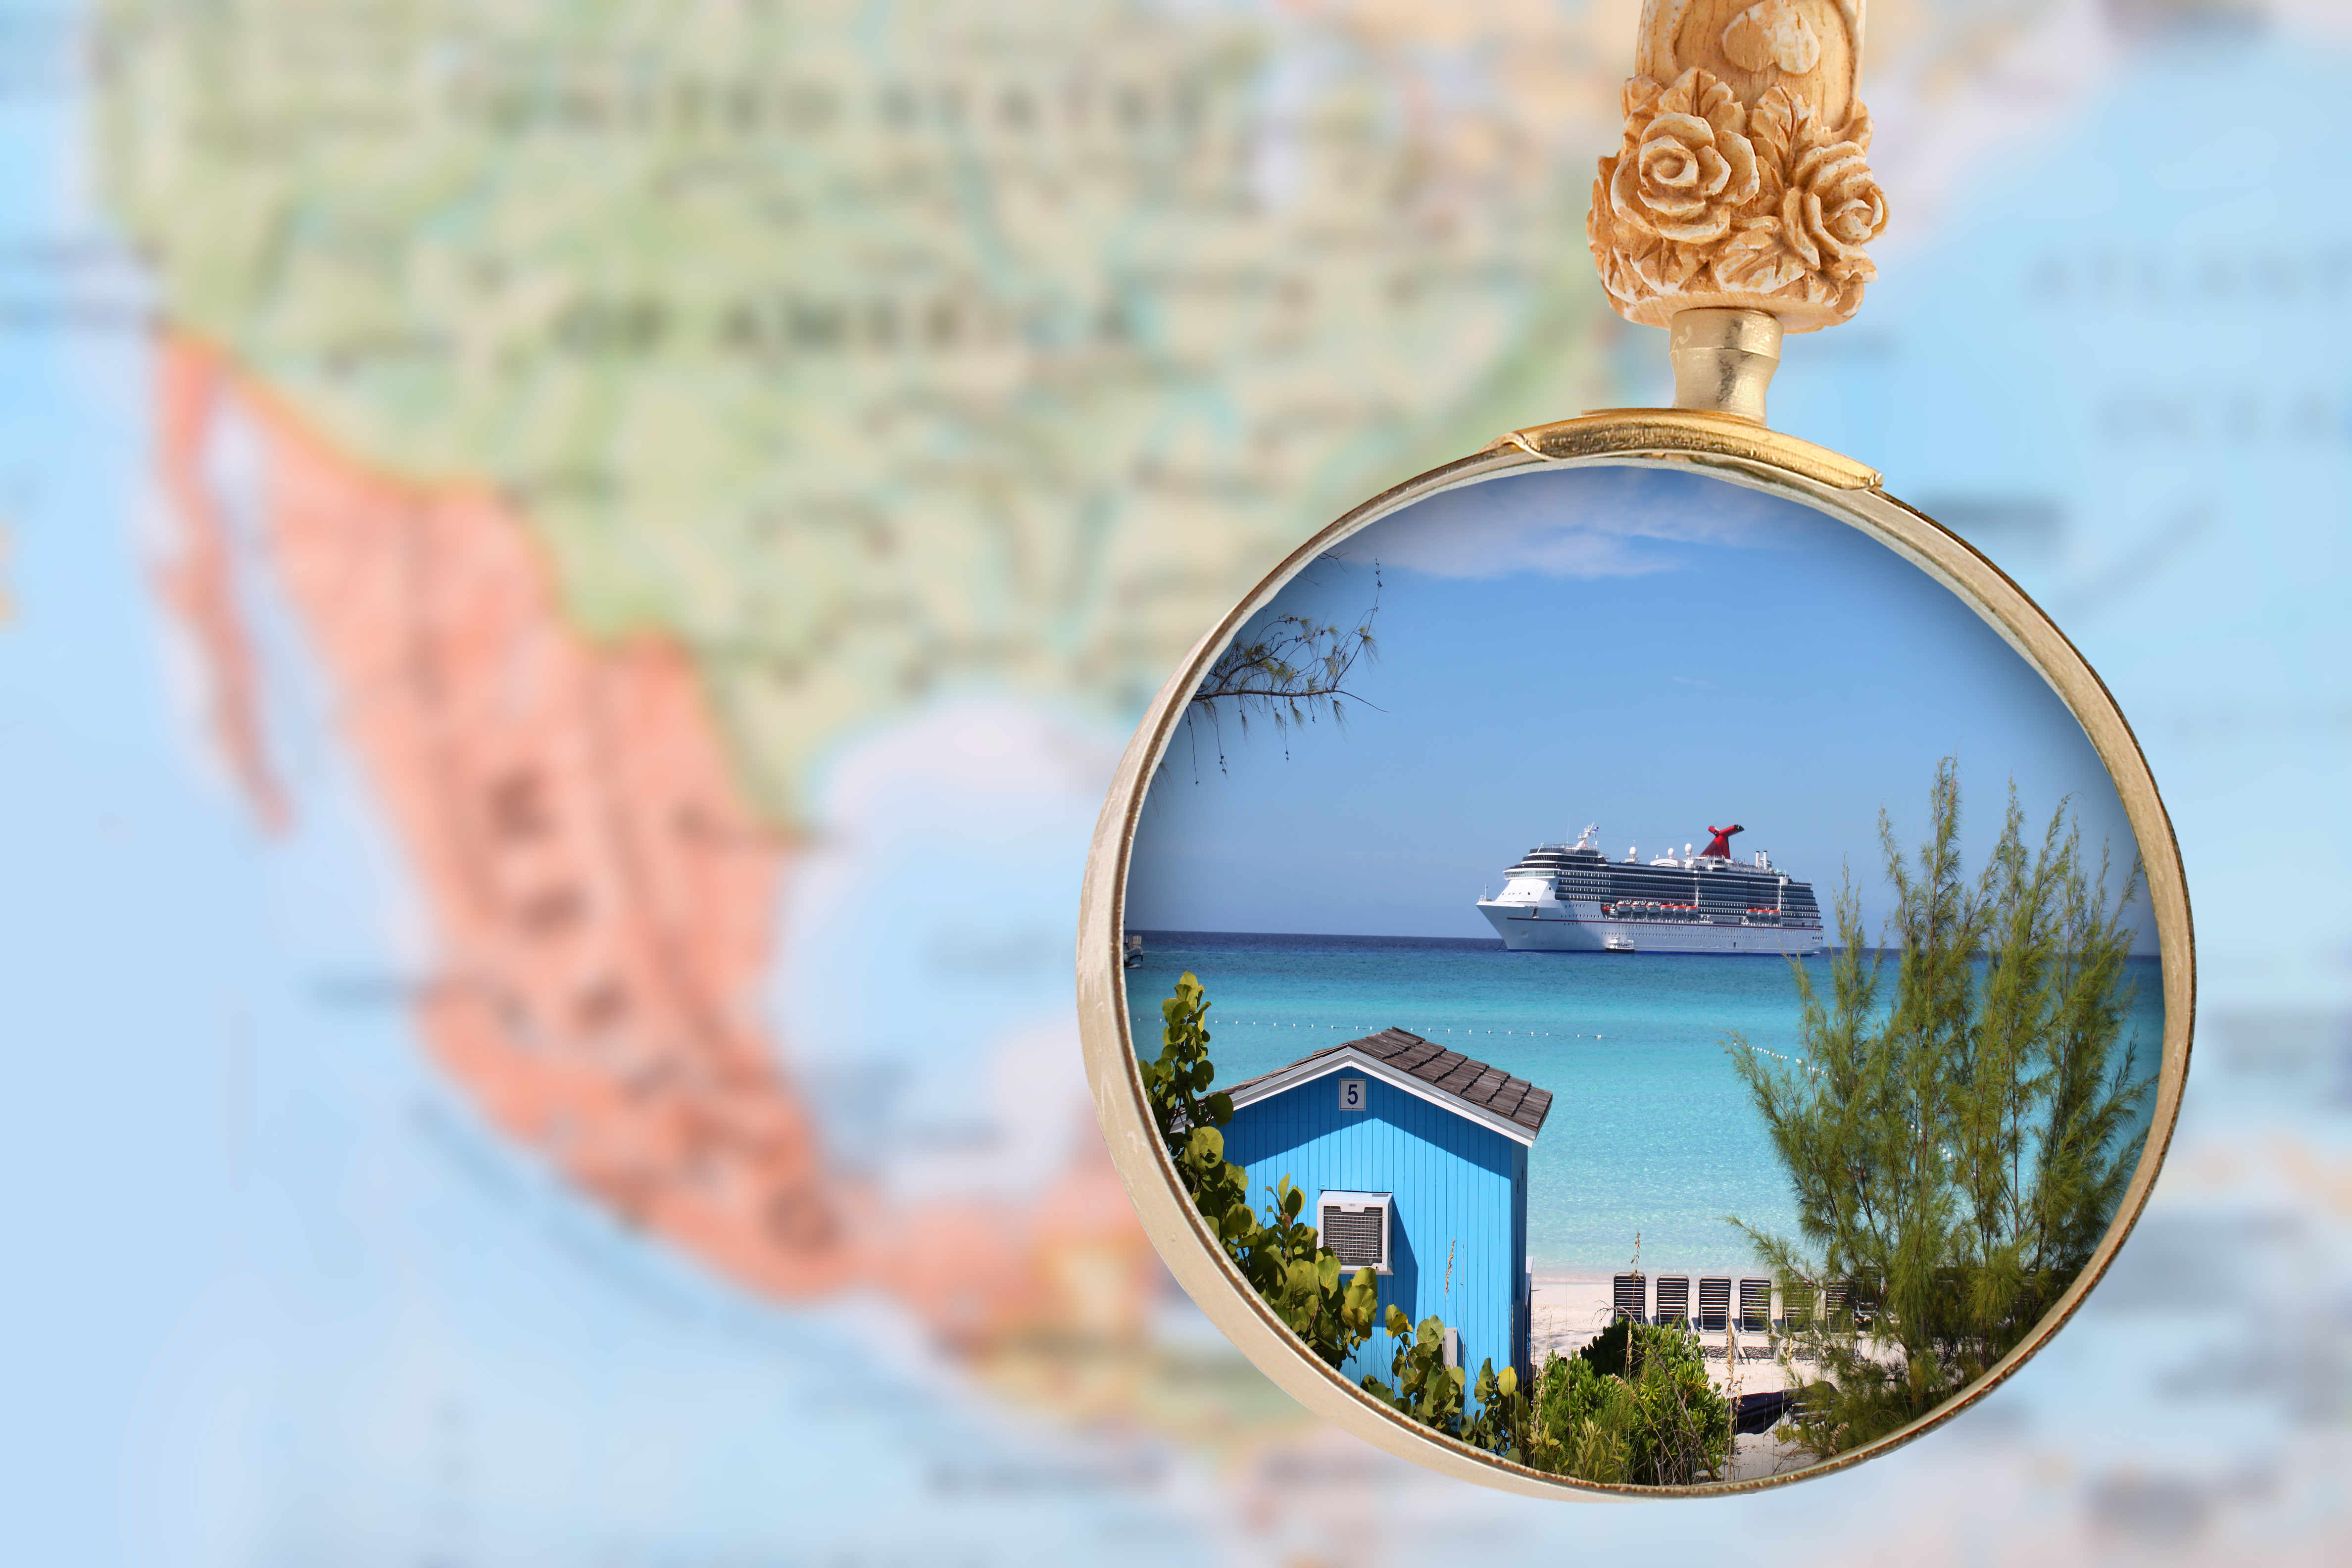 cruise ship with magnifying glass